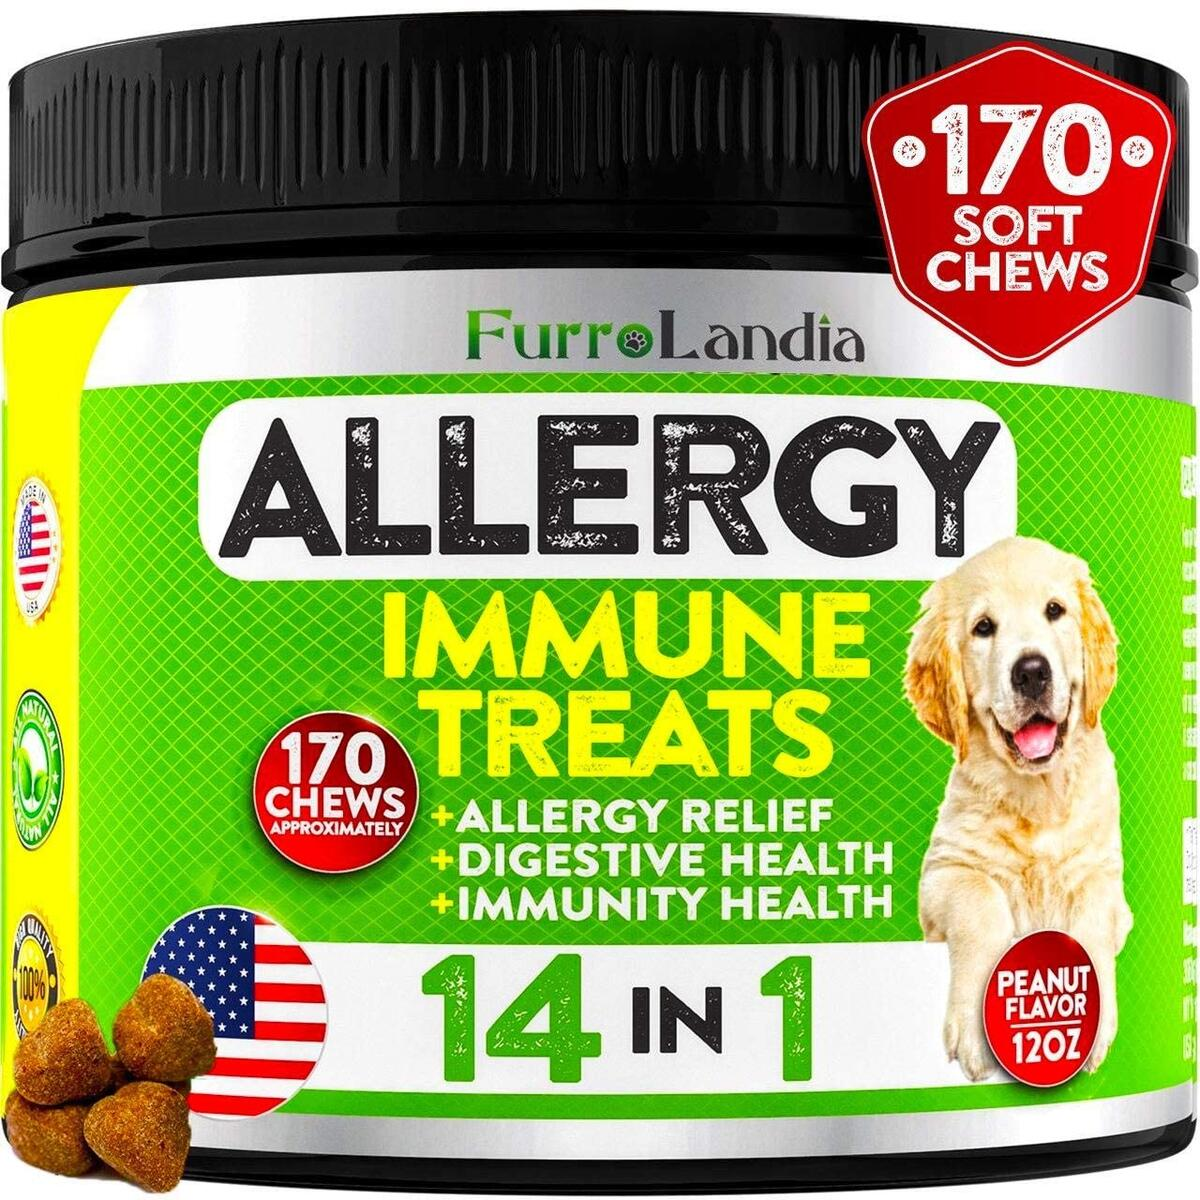 Allergy Relief Immune Supplement for Dogs - Seasonal Allergies, Itch Relief for Dogs, Skin Hot Spots - Colostrum, Digestive Probiotics for Skin Health - Made in USA | 170 Treats - Peanut Flavor